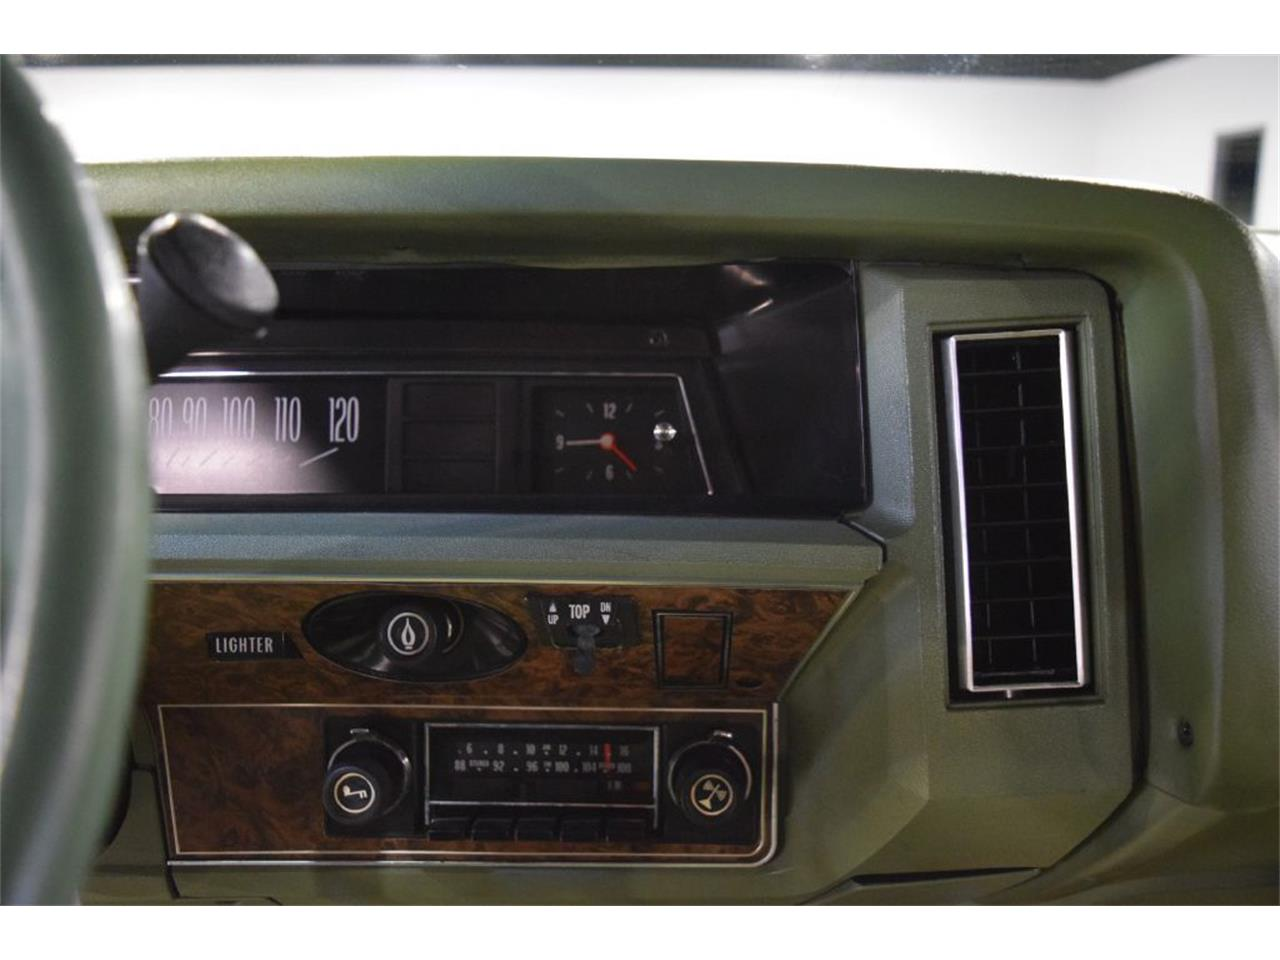 1974 Chevrolet Caprice for sale in Sioux City, IA – photo 18